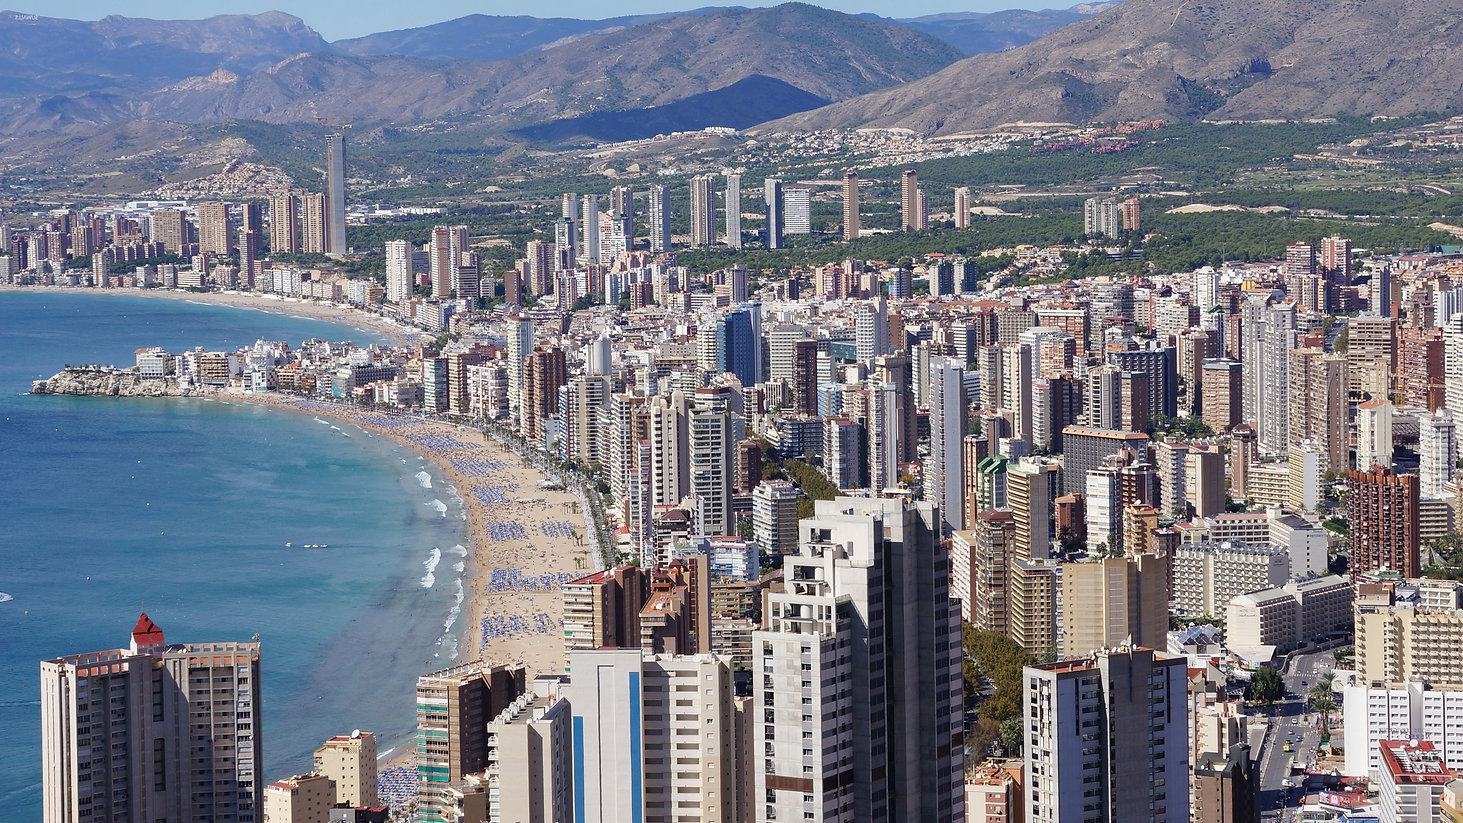 Benidorm%20wallpaper%20%20%20World%20wal